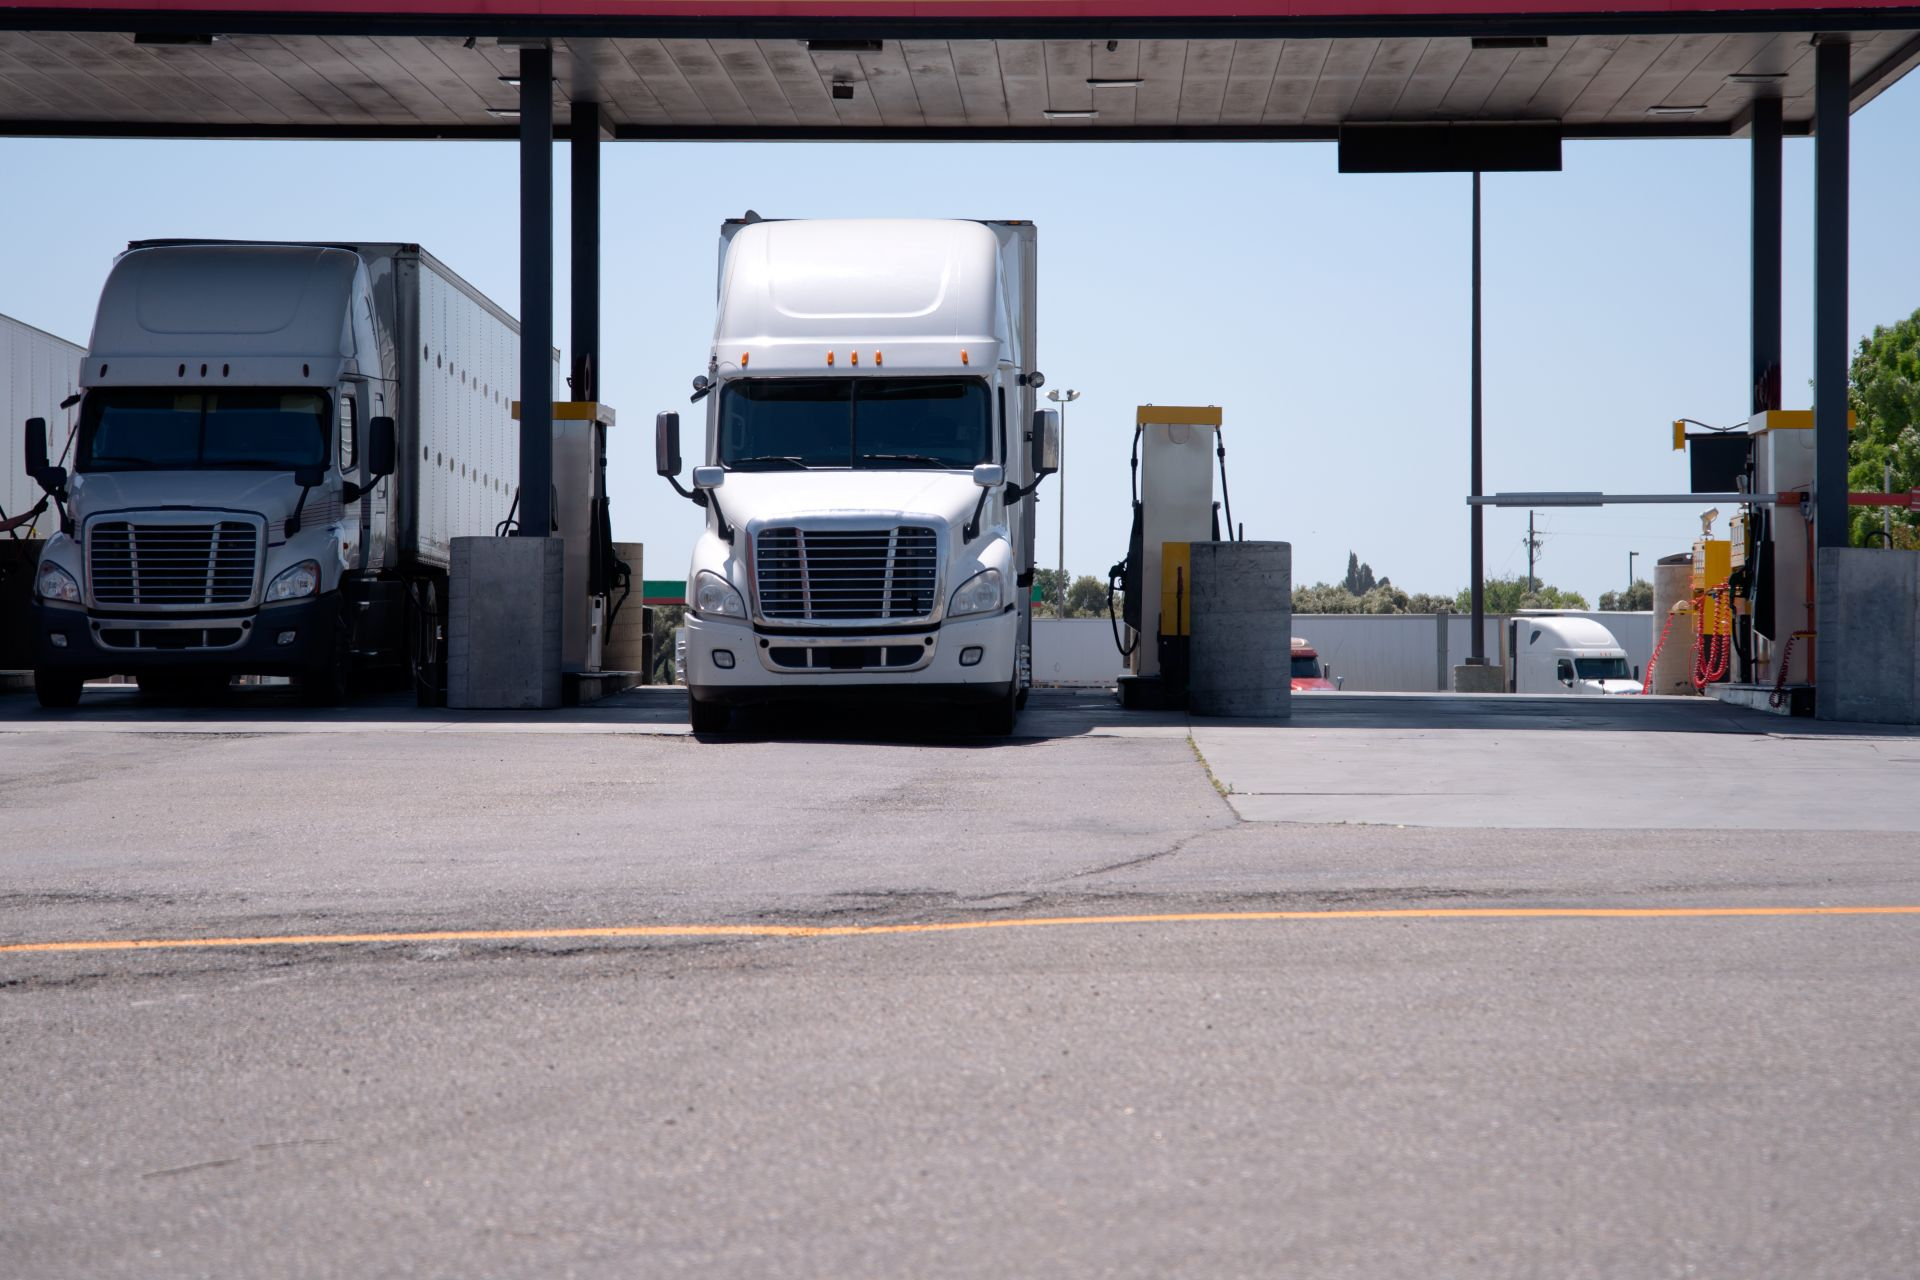 large truck at the fueling station